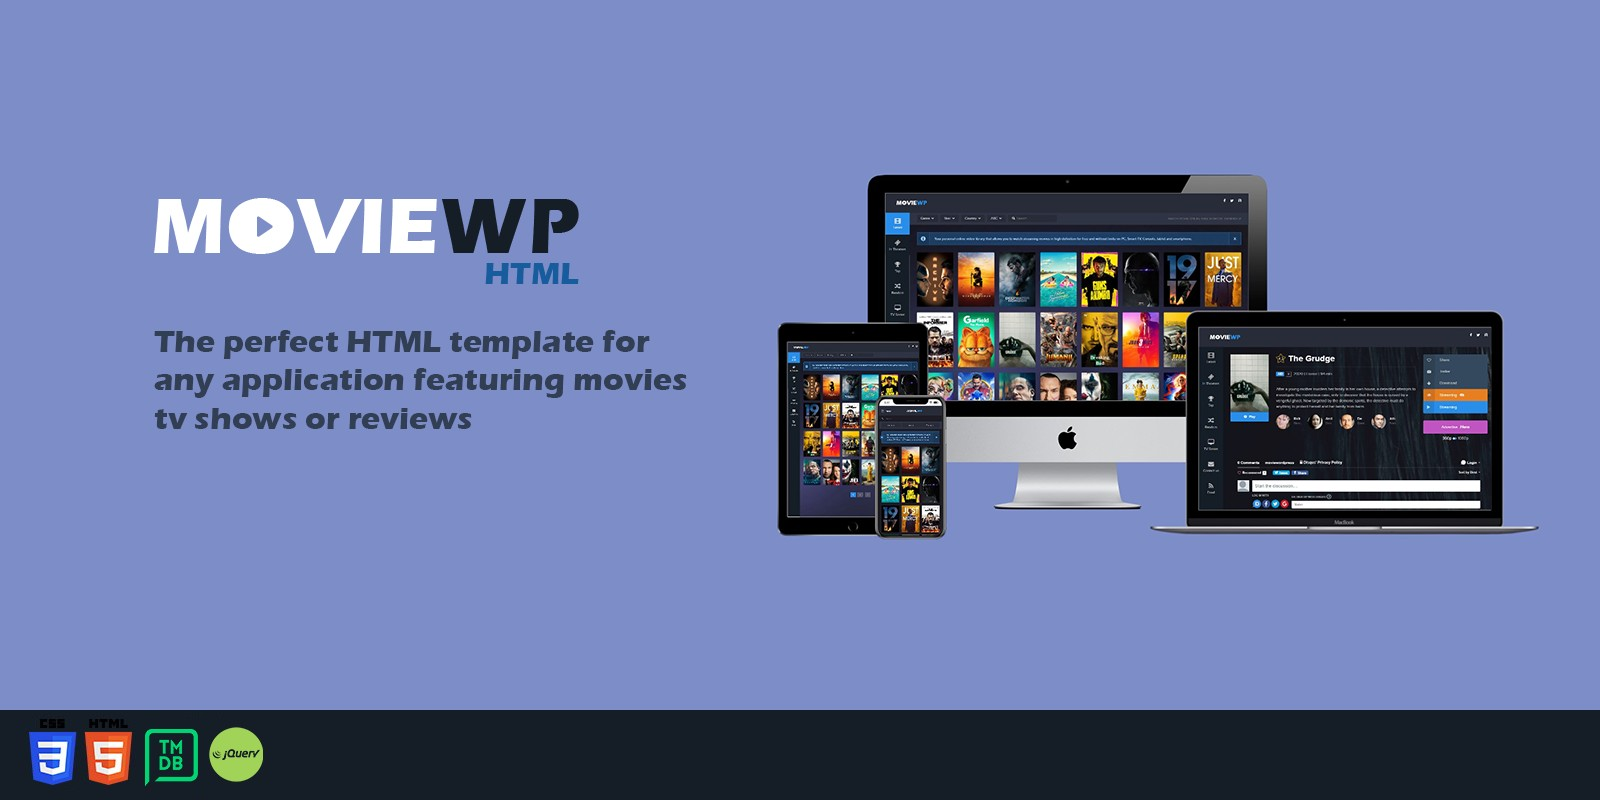 MovieWP - HTML template